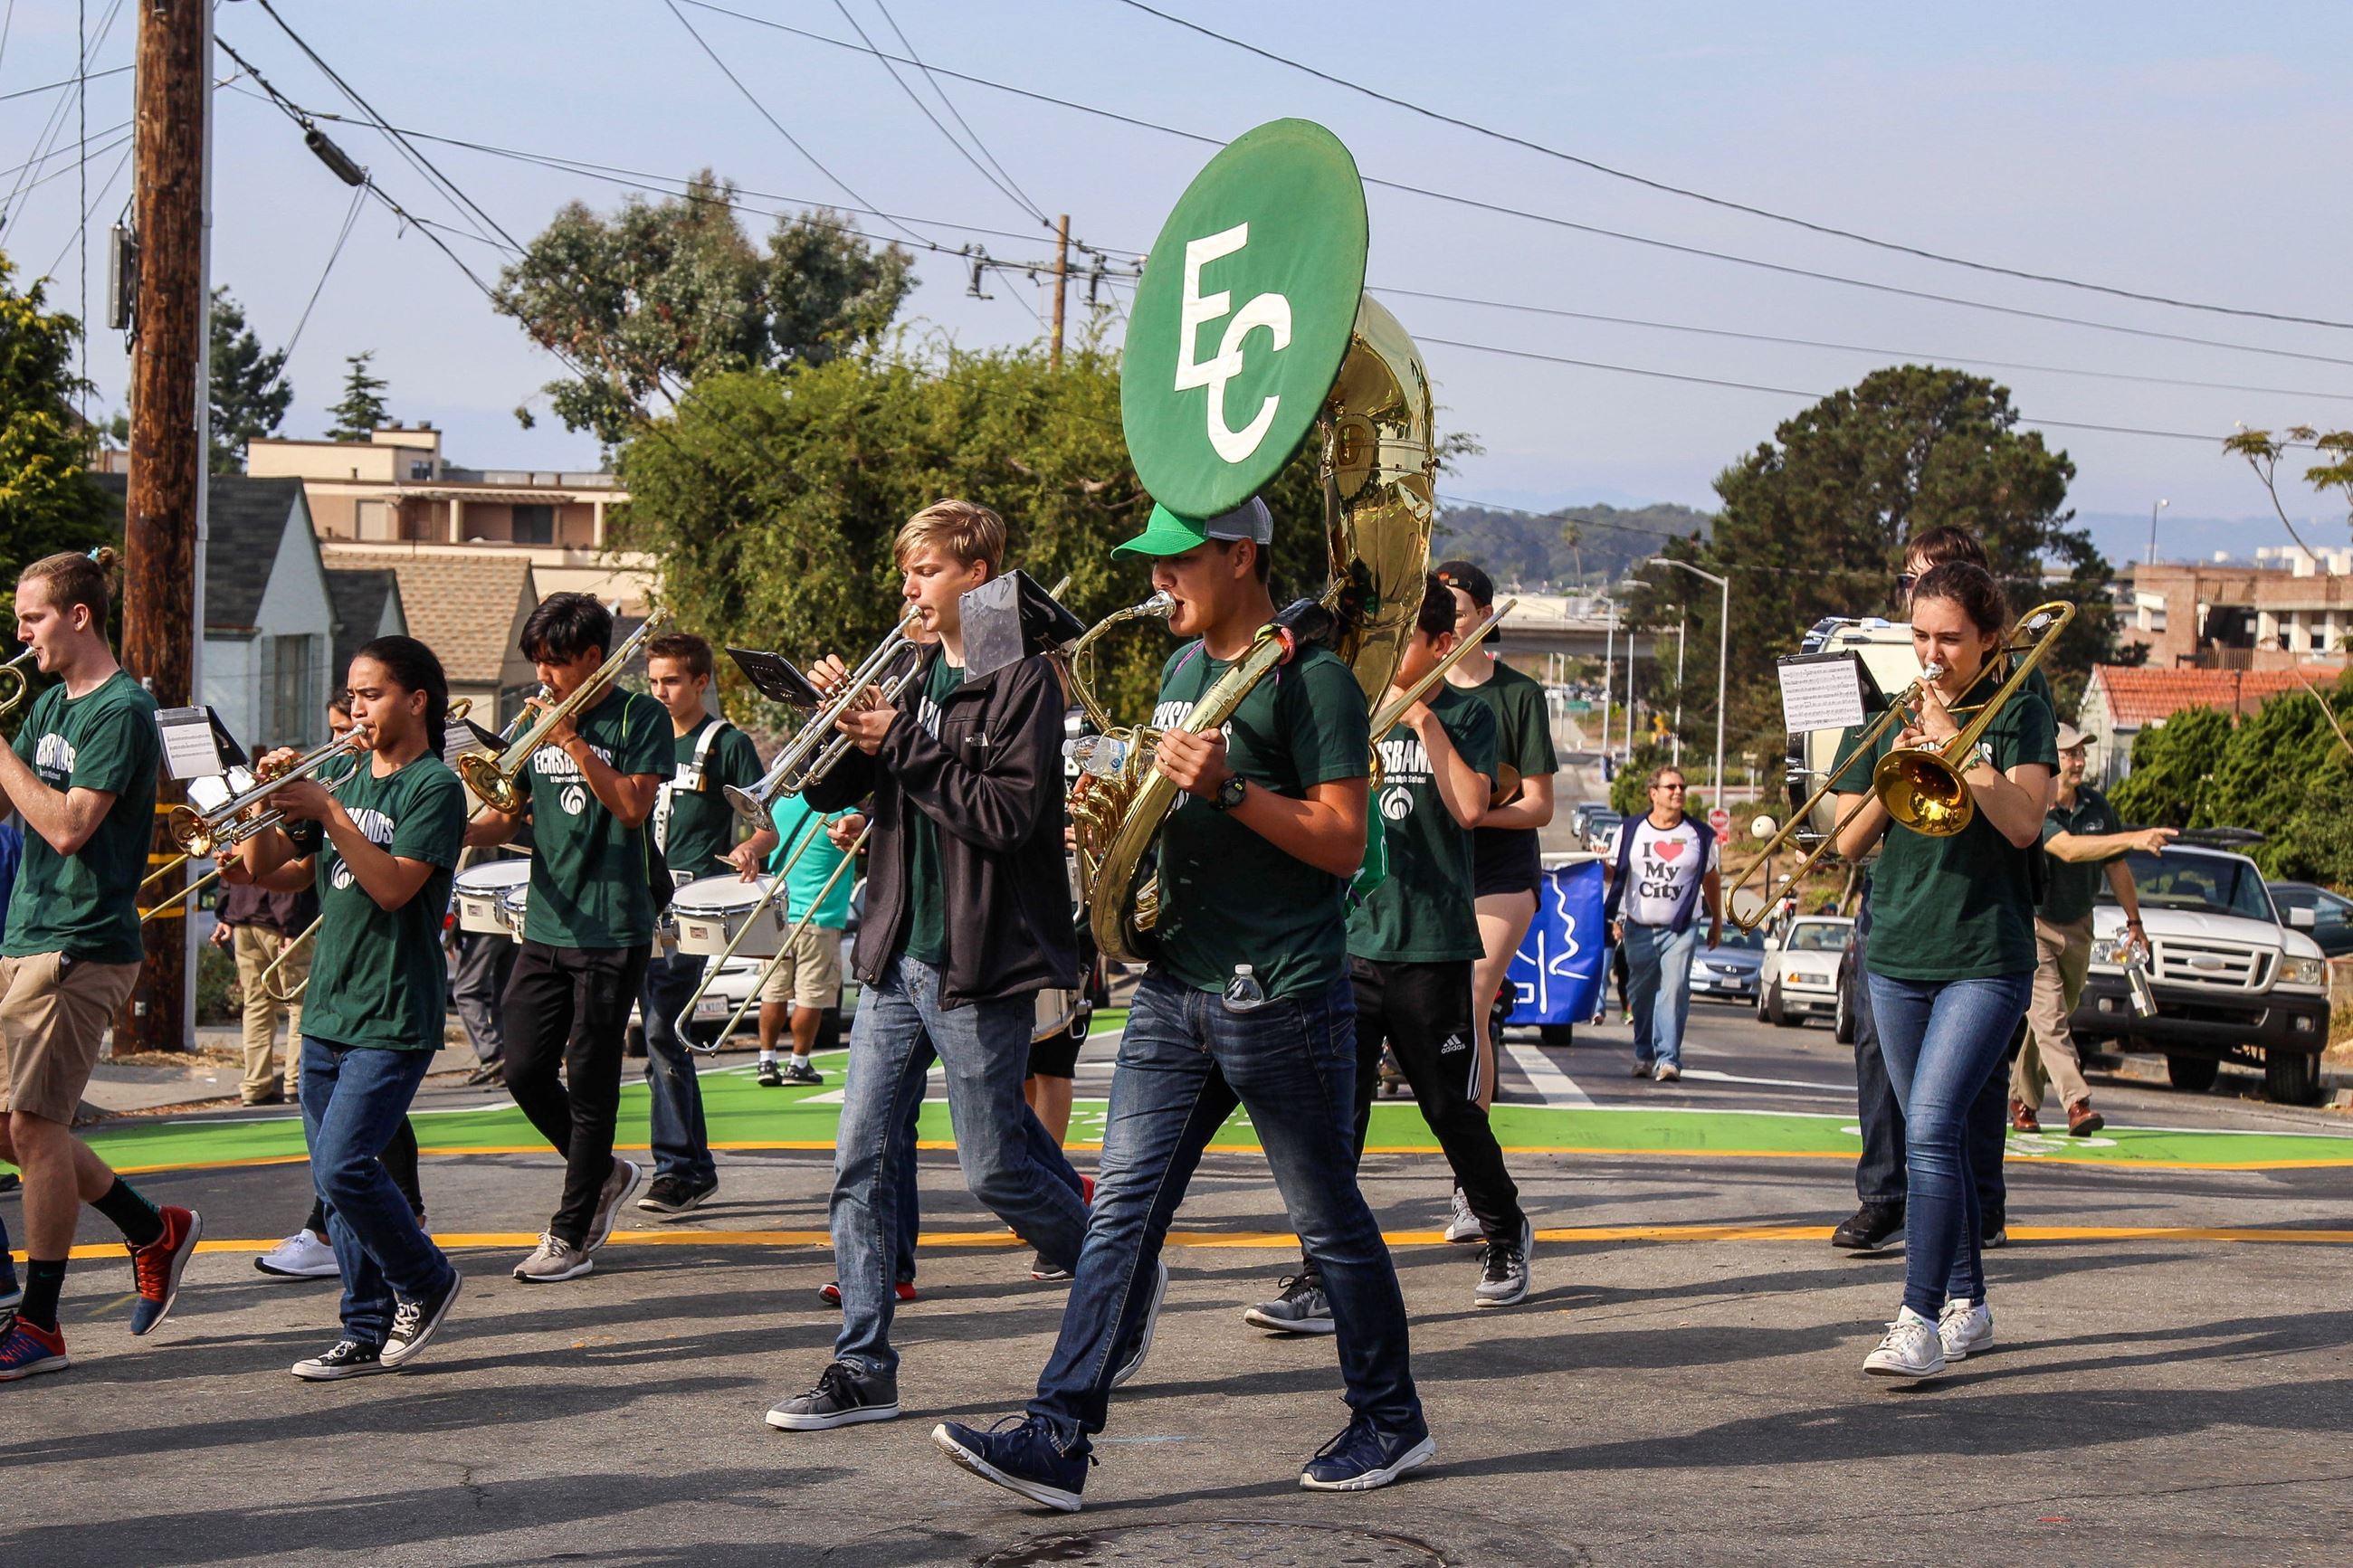 211 ECHS band in Parade 4- Photo by Marin Stuart